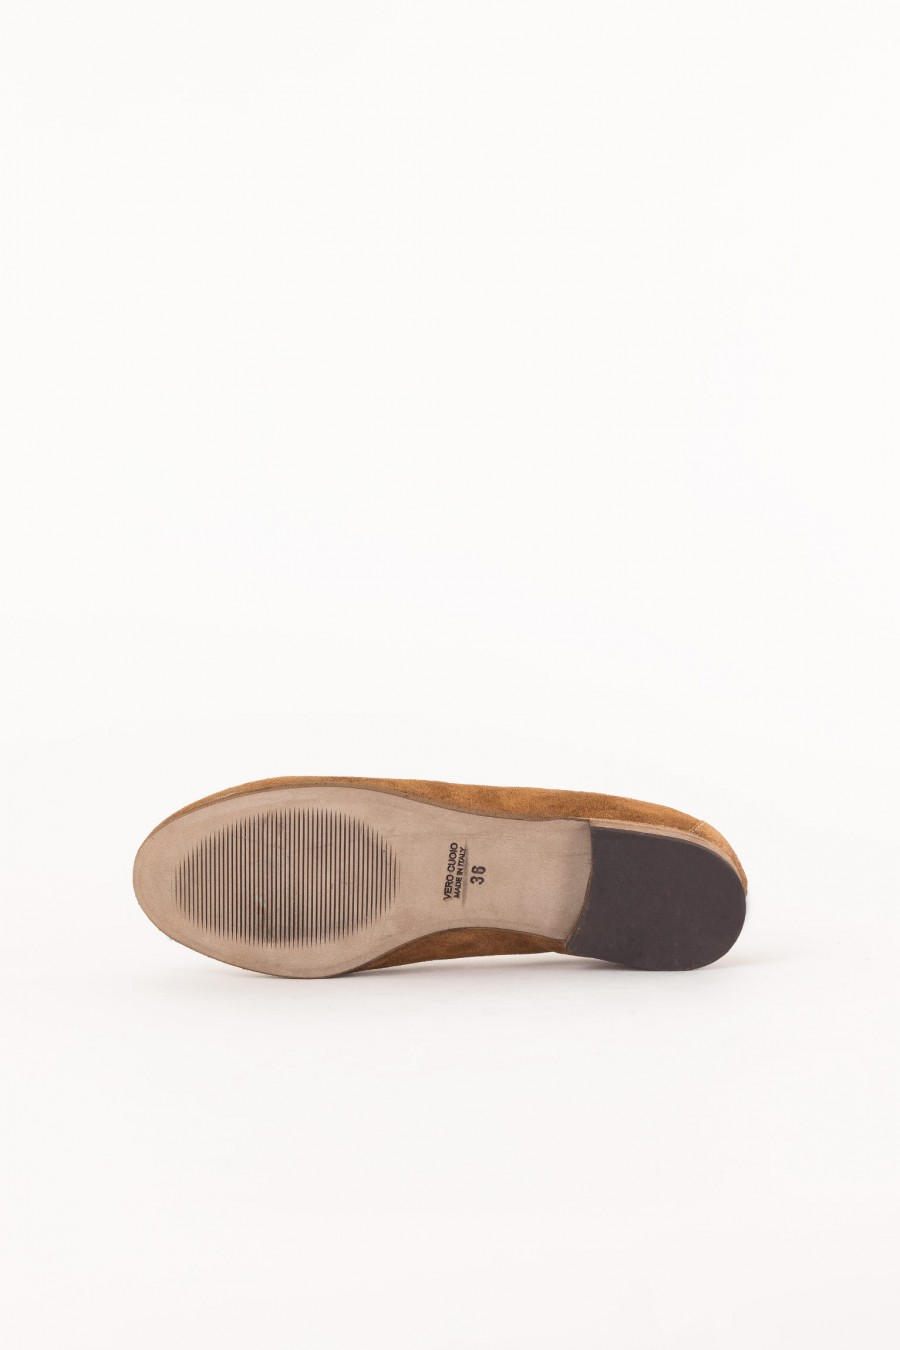 brown suede shoe closed